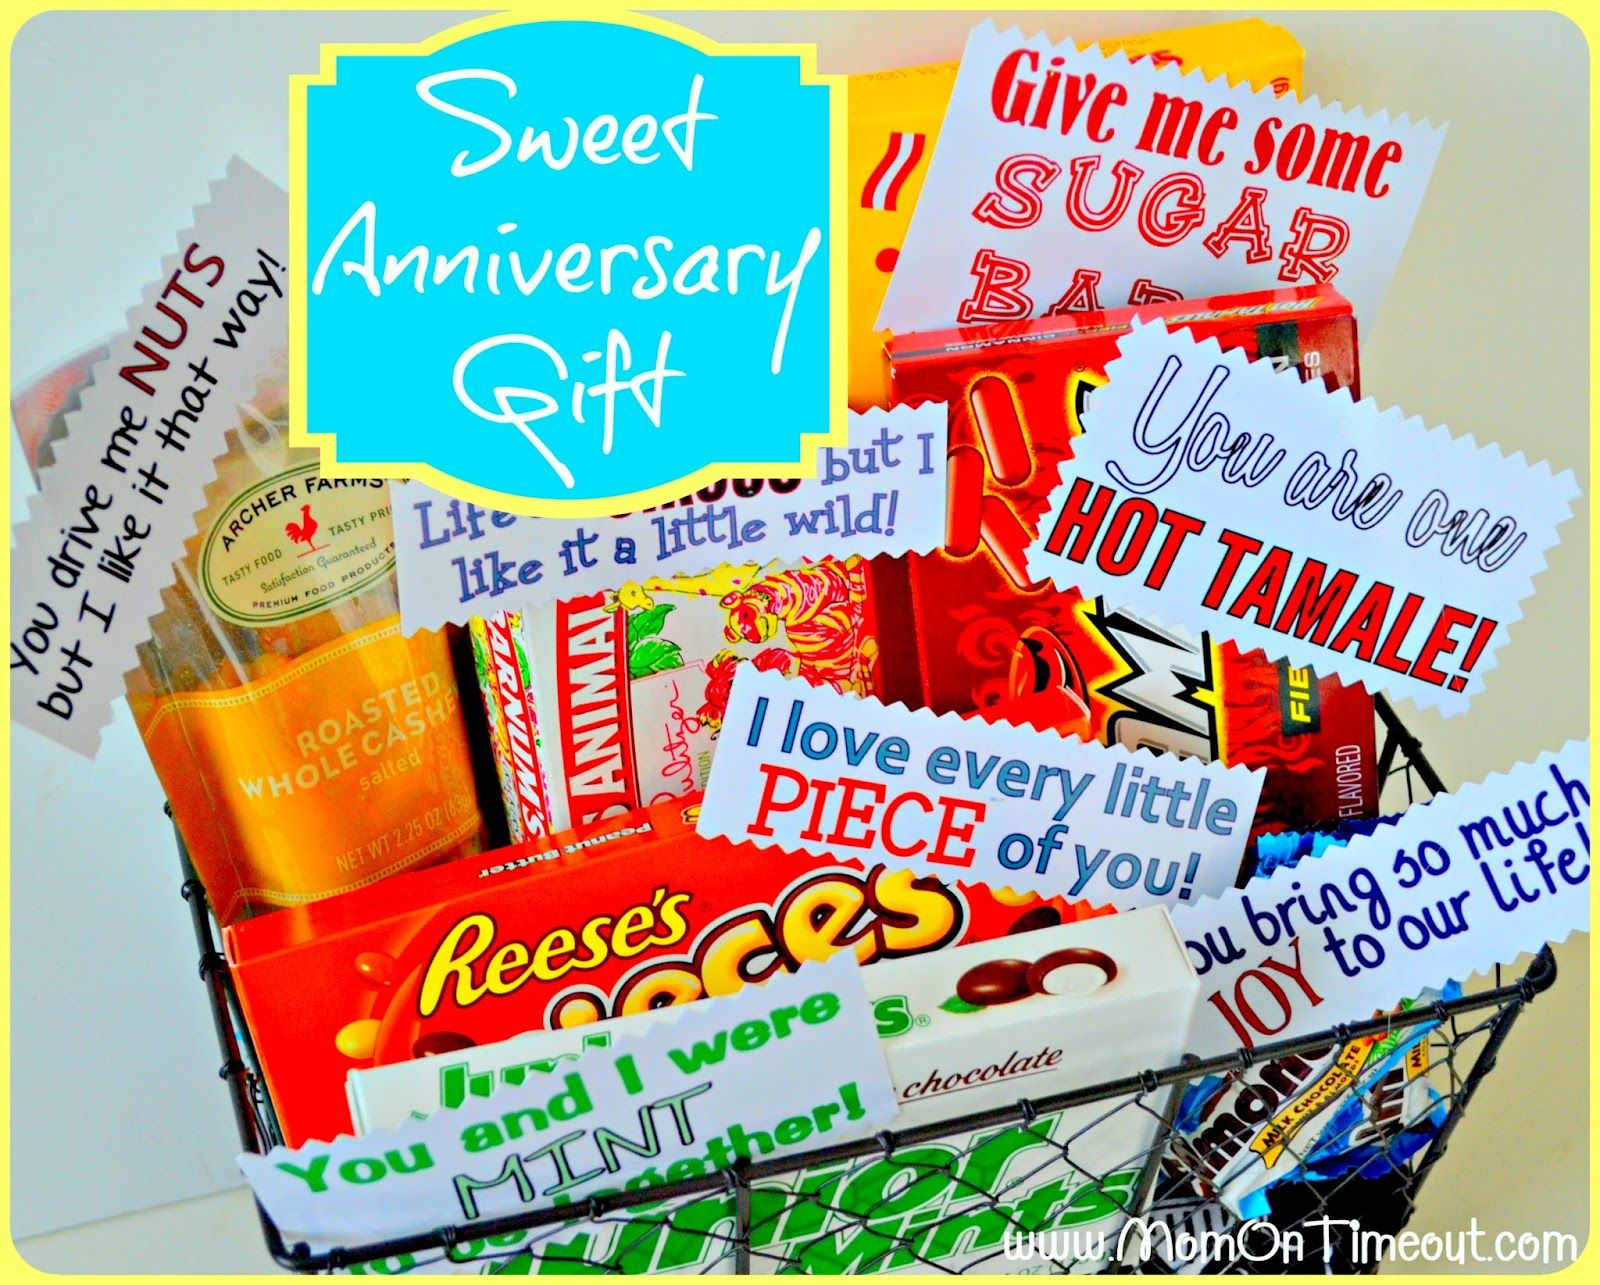 6th Year Wedding Anniversary Gifts For Him: Mom On Timeout: Sweet Anniversary Gift